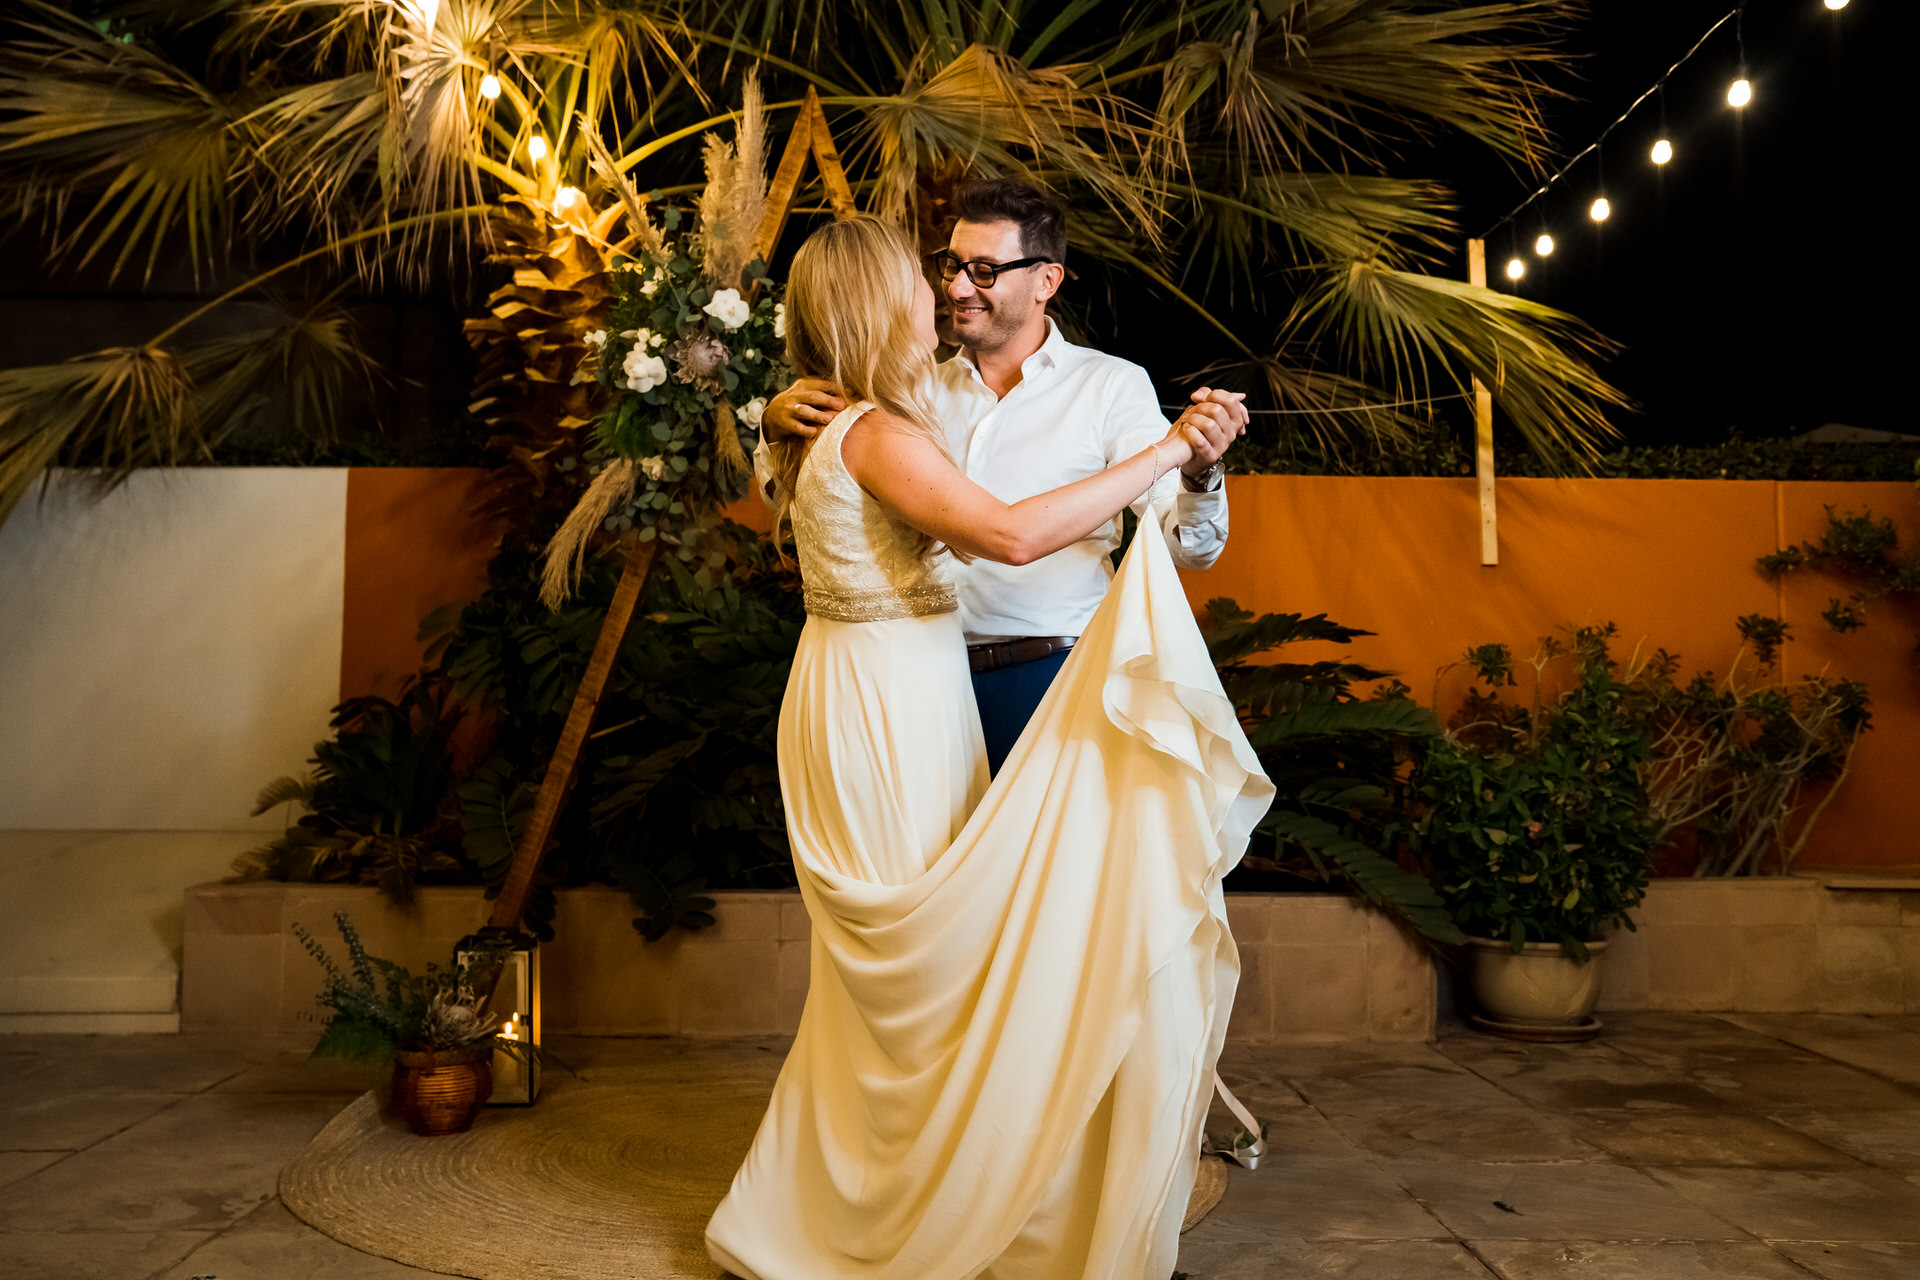 Elopement Photographer - Dubai Weddings | A moment from the couple's first dance